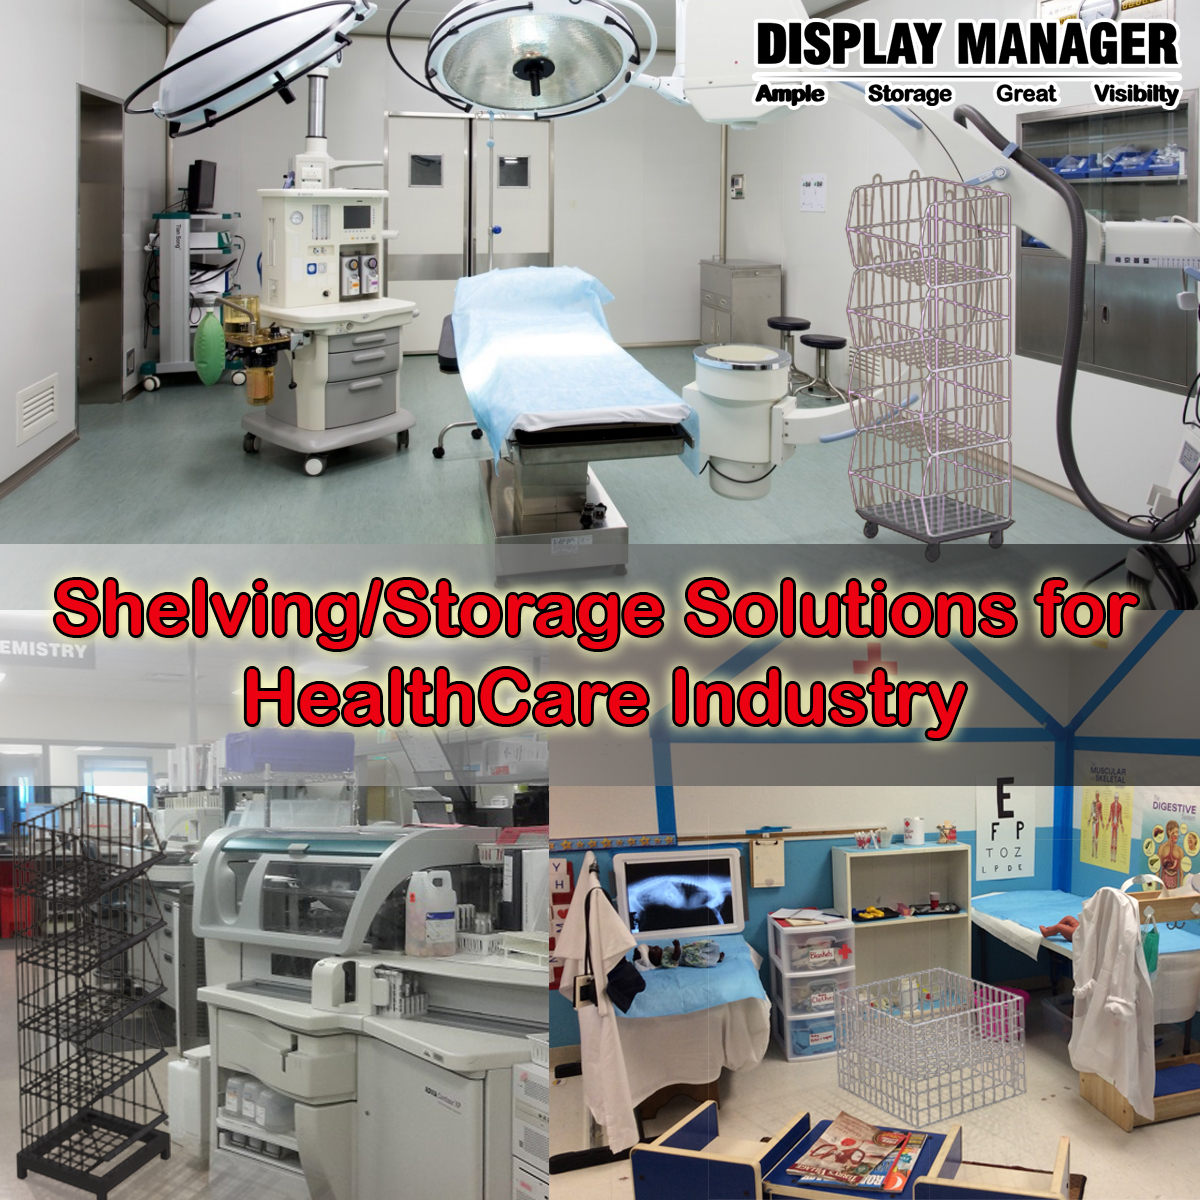 ShelvingStorage Solutions for HealthCare Industry